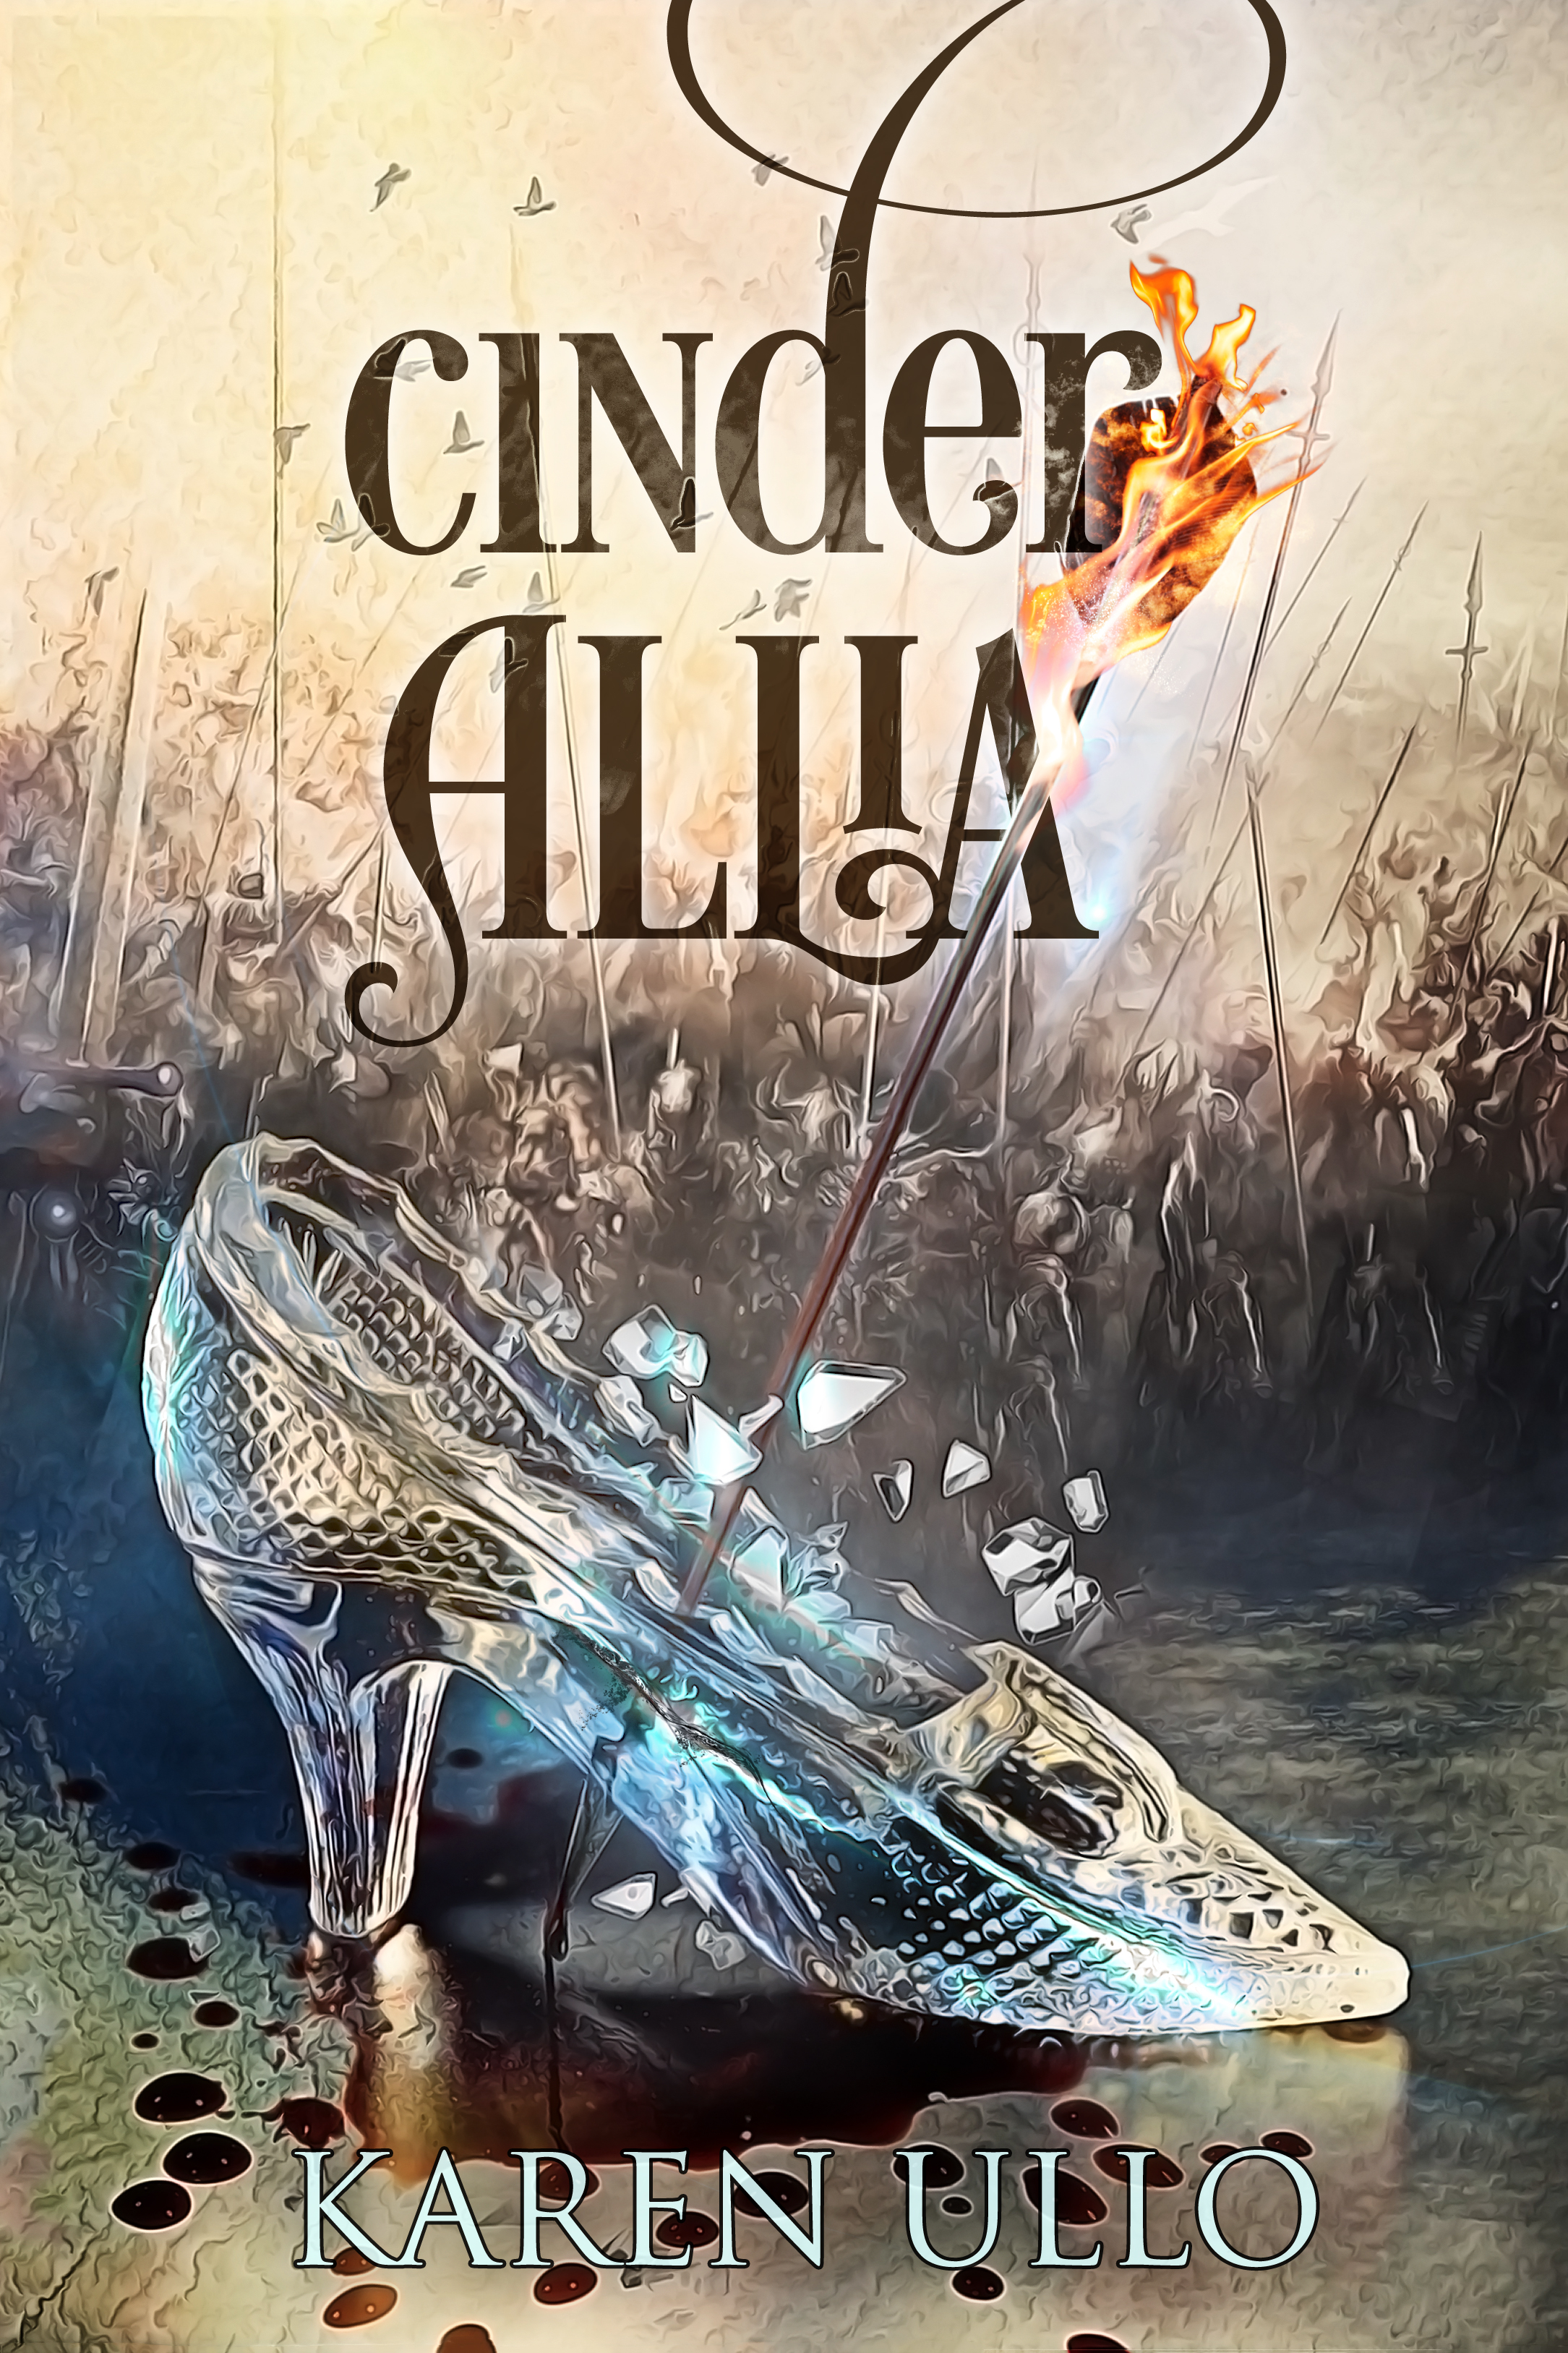 CINDER ALLIA by Karen Ullo: Cinder Allia has spent eight years living under her stepmother's brutal thumb, wrongly punished for having caused her mother's death. She lives for the day when the prince will grant her justice; but her fairy godmother shatters her hope with the news that the prince has died in battle...